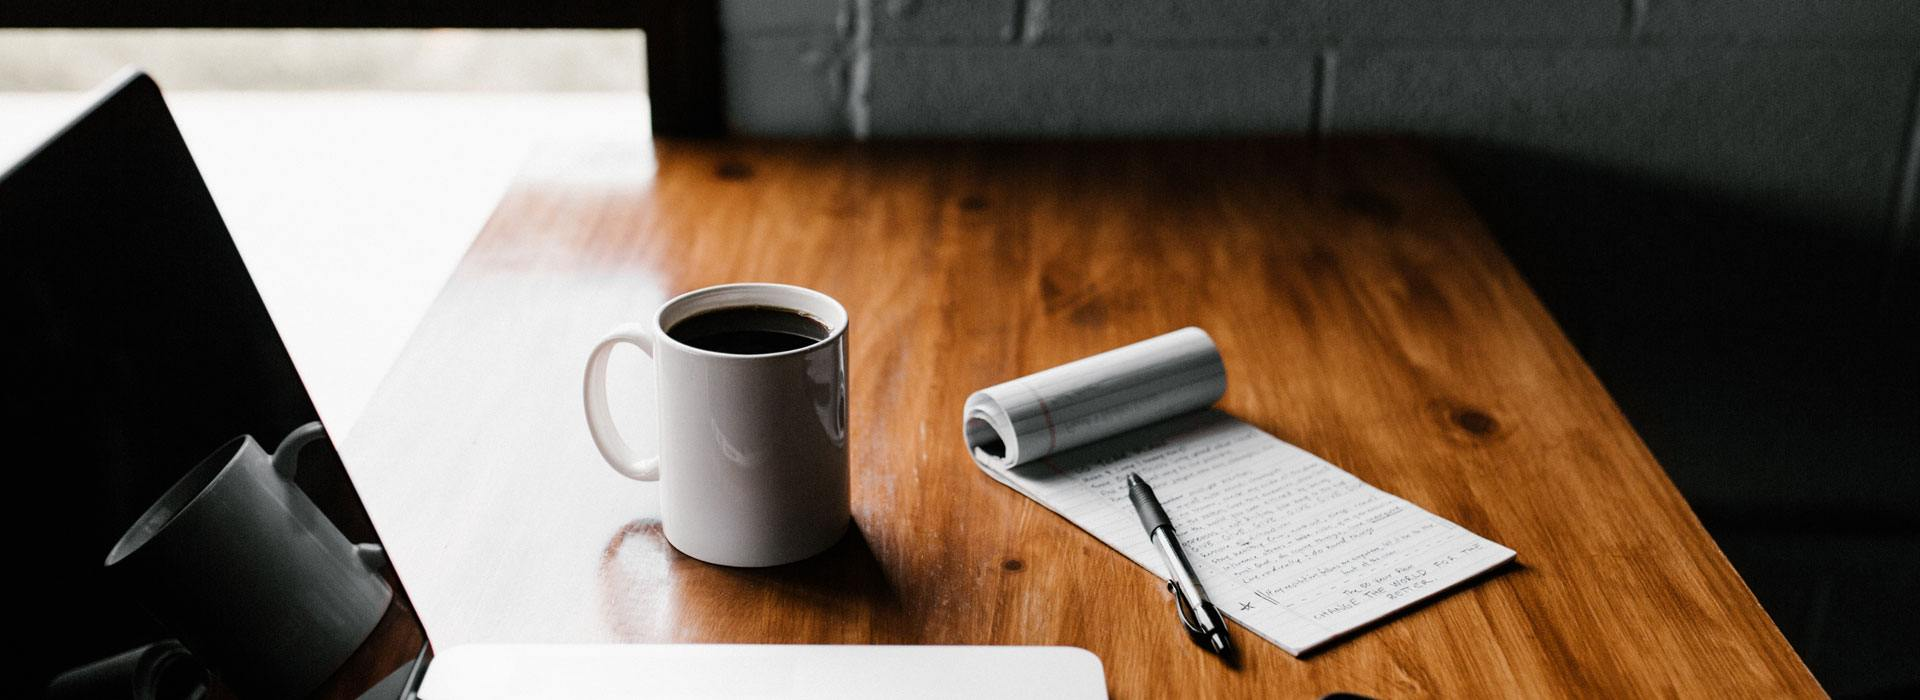 Notepad with writing, a pen, a laptop, and a black coffee in a white mug sit on a wooden desk tabletop